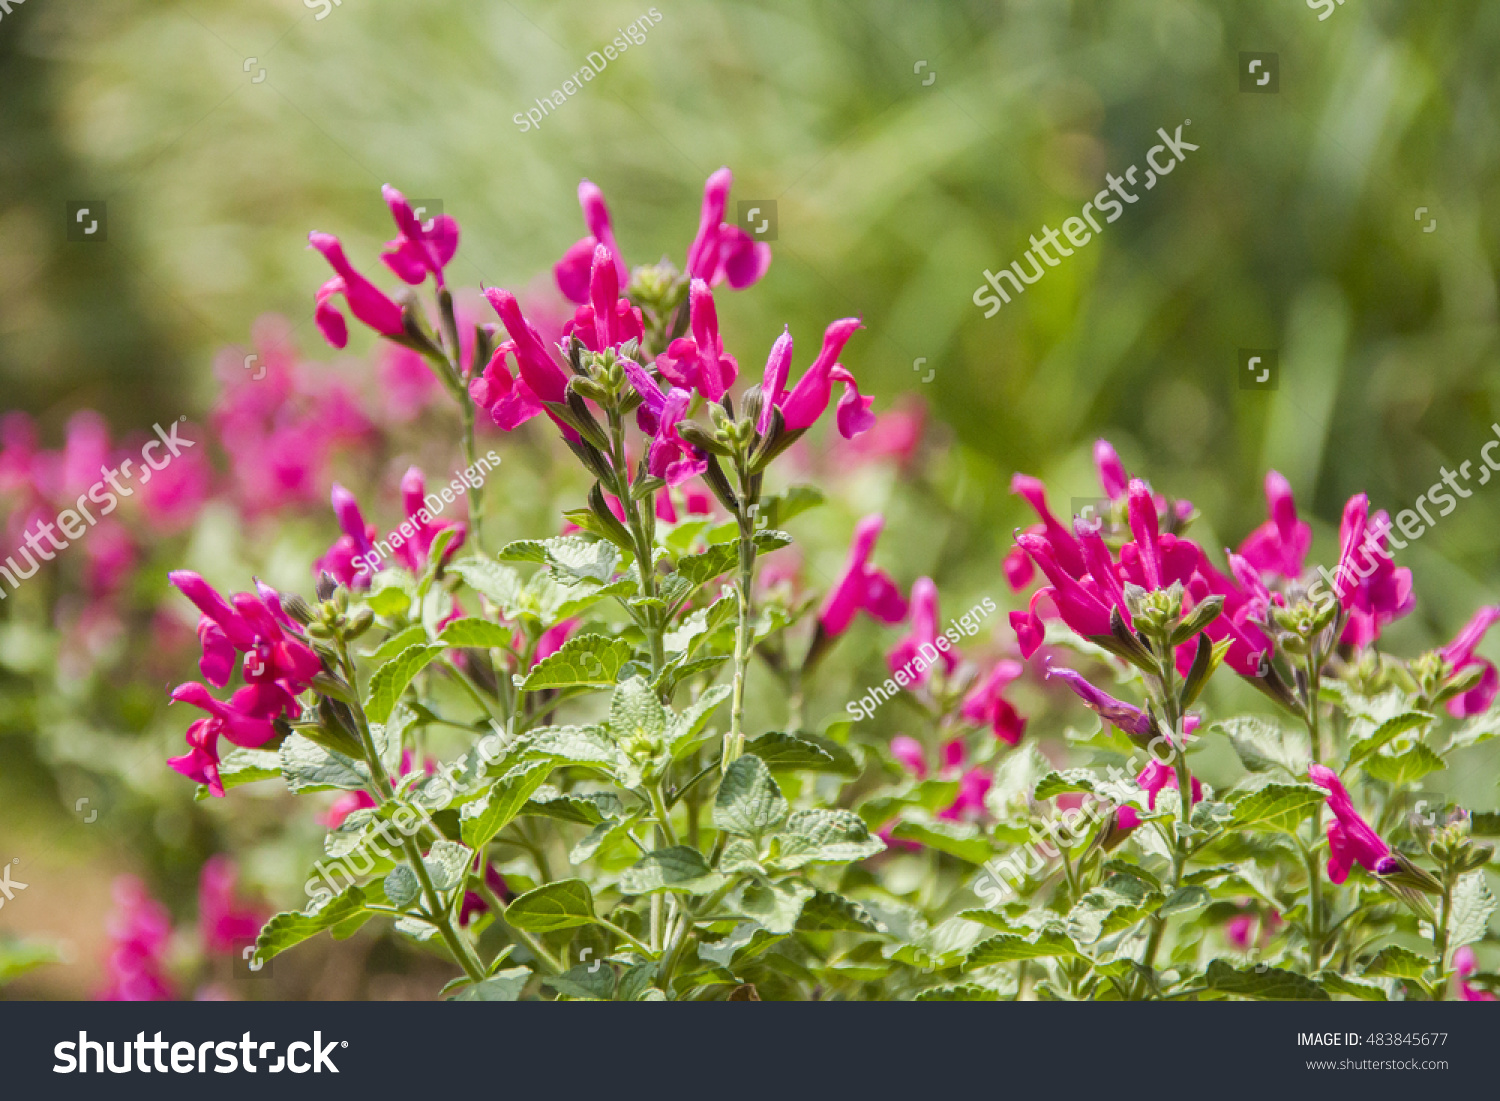 Fine Detailed Plants Small Pink Flowers Stock Photo Edit Now